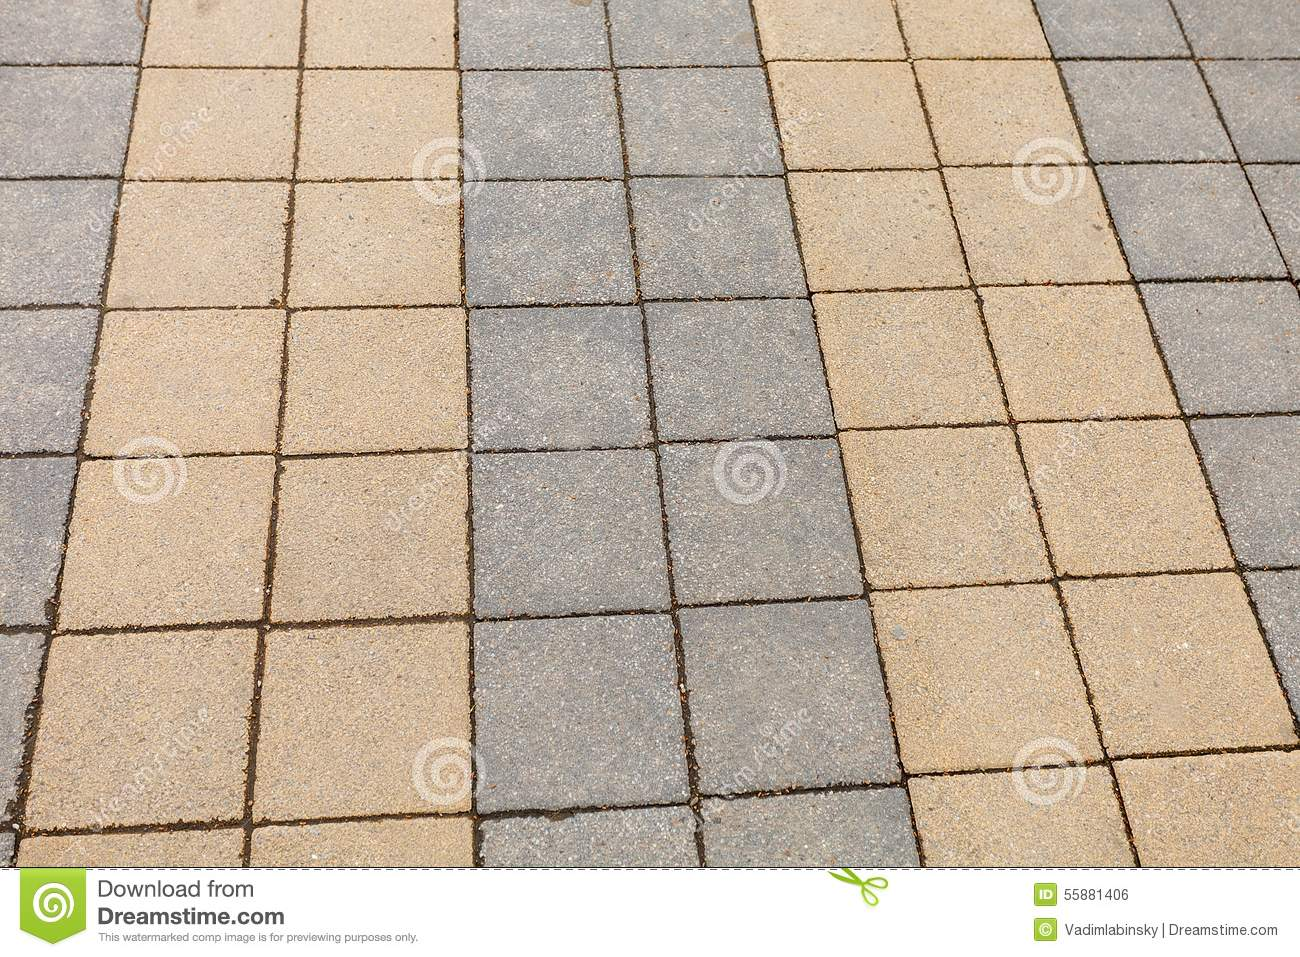 Sidewalk Tile Texture Stock Photo - Image: 55881406